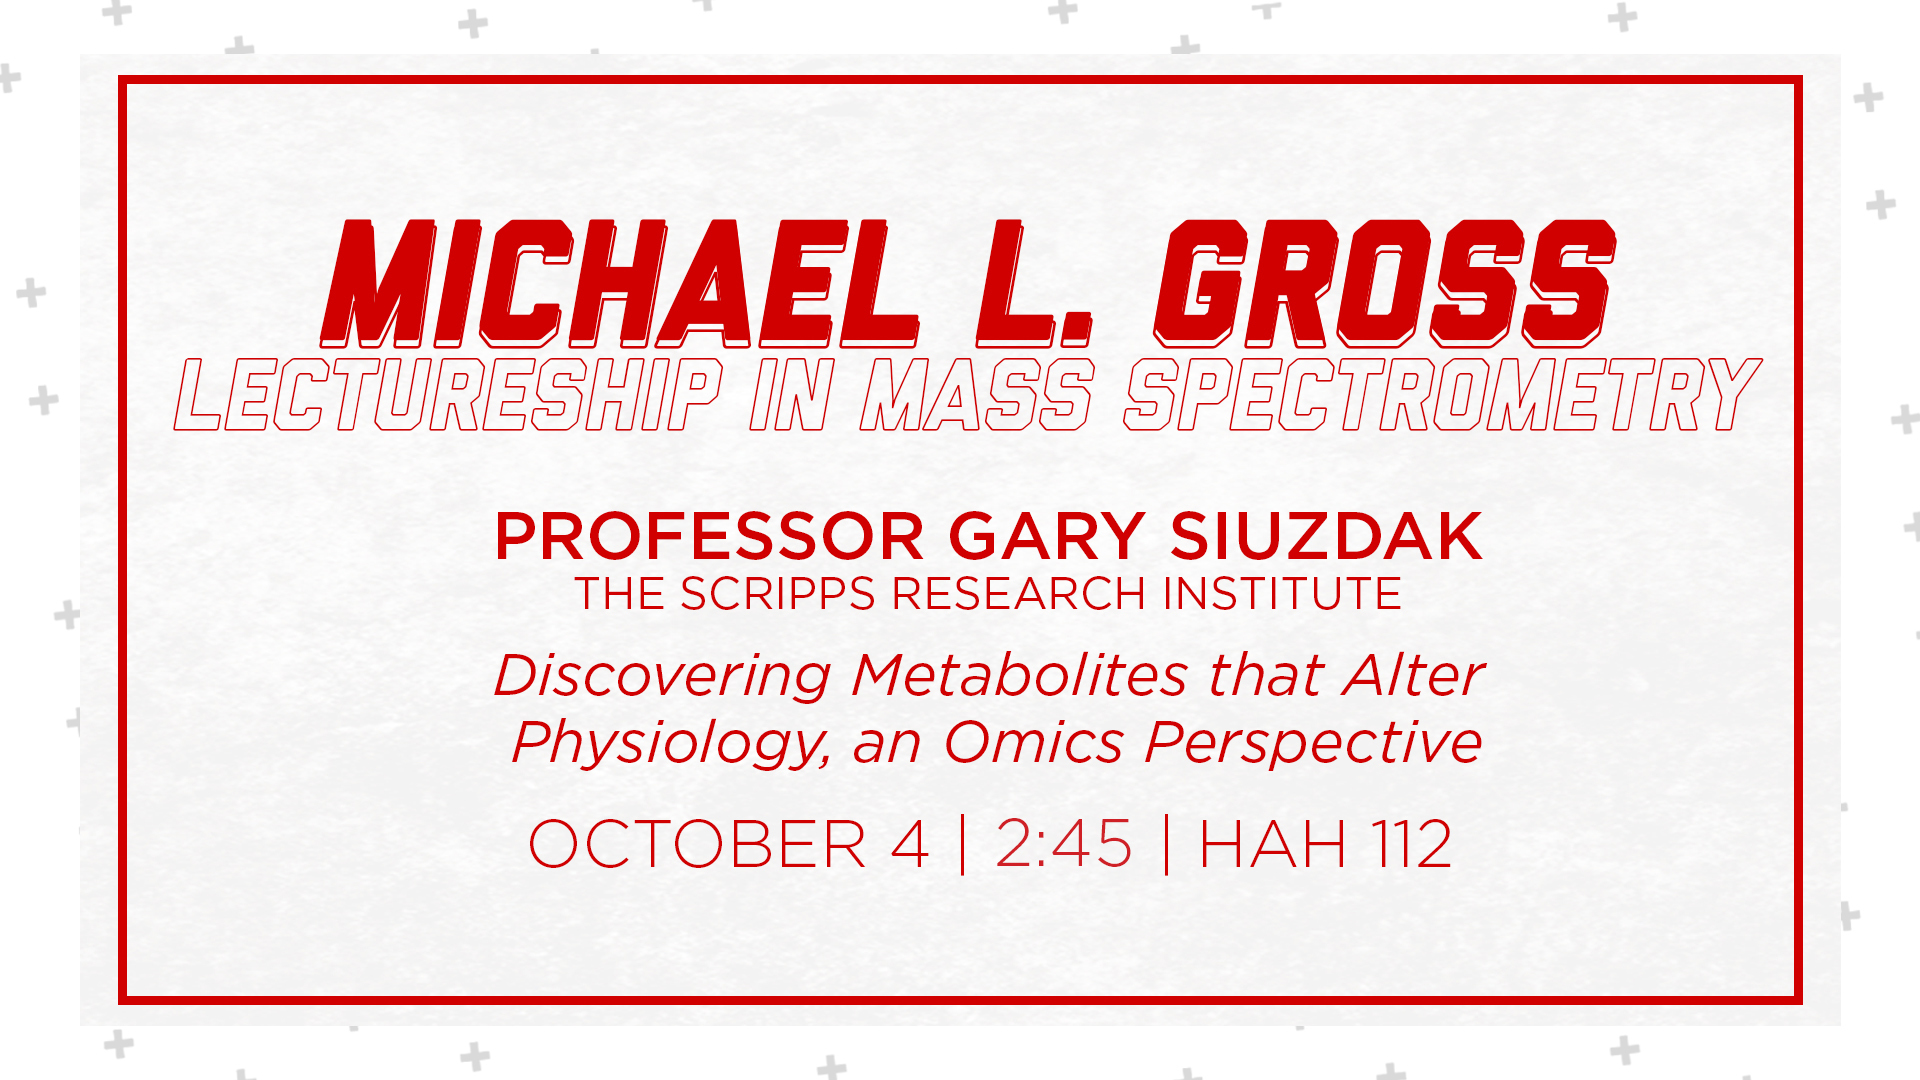 Siuzdak to Deliver the 2019 M.L. Gross Award Lecture